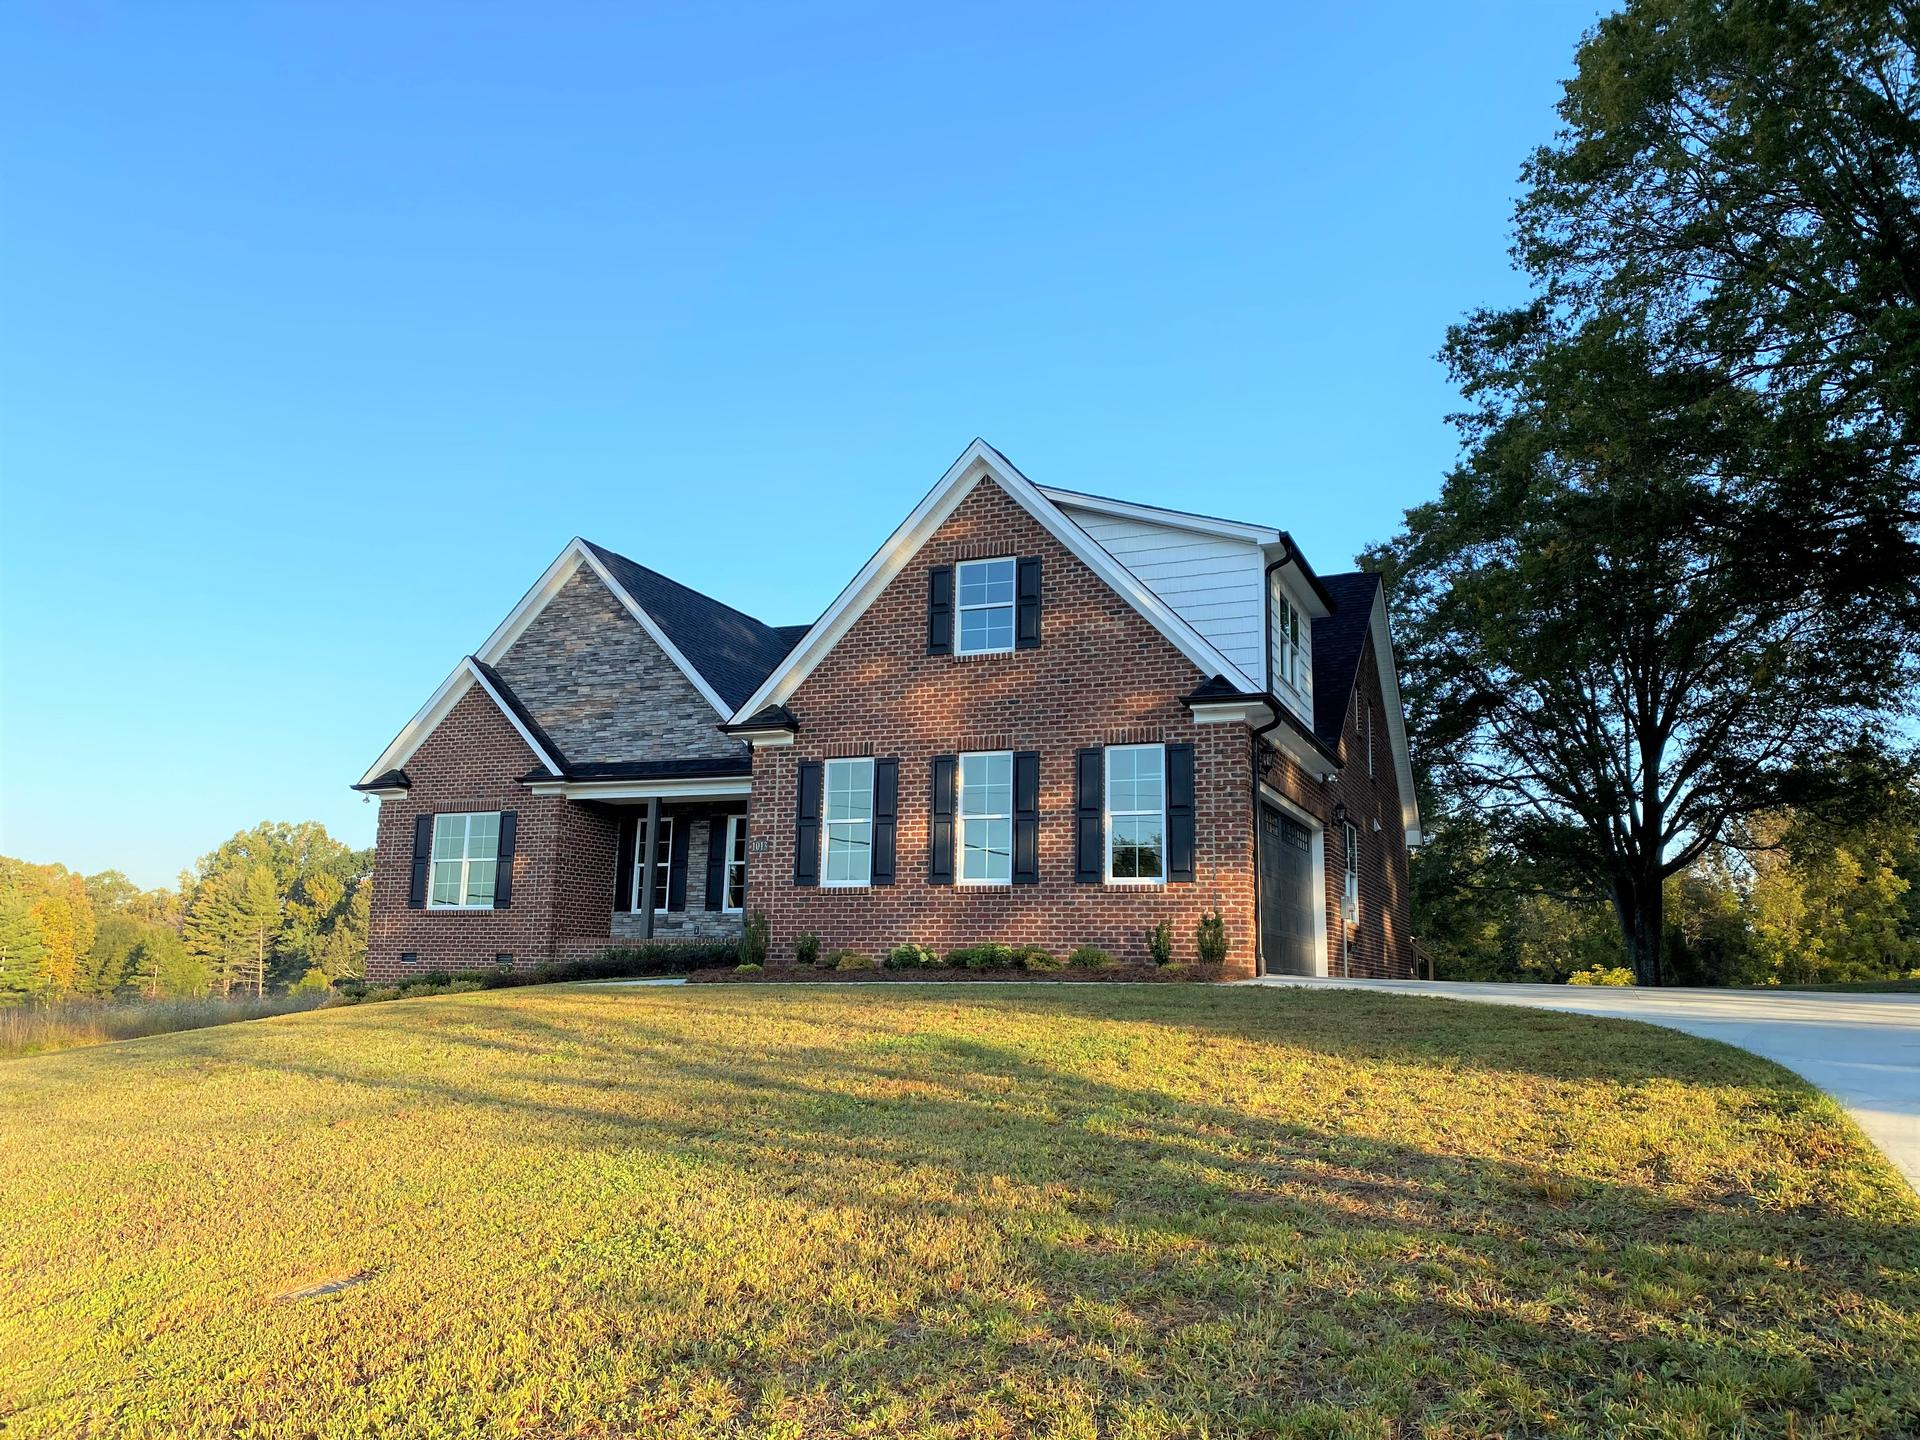 Petree Ridge Mt Tabor Northwest Winston Salem - Homes For Sale